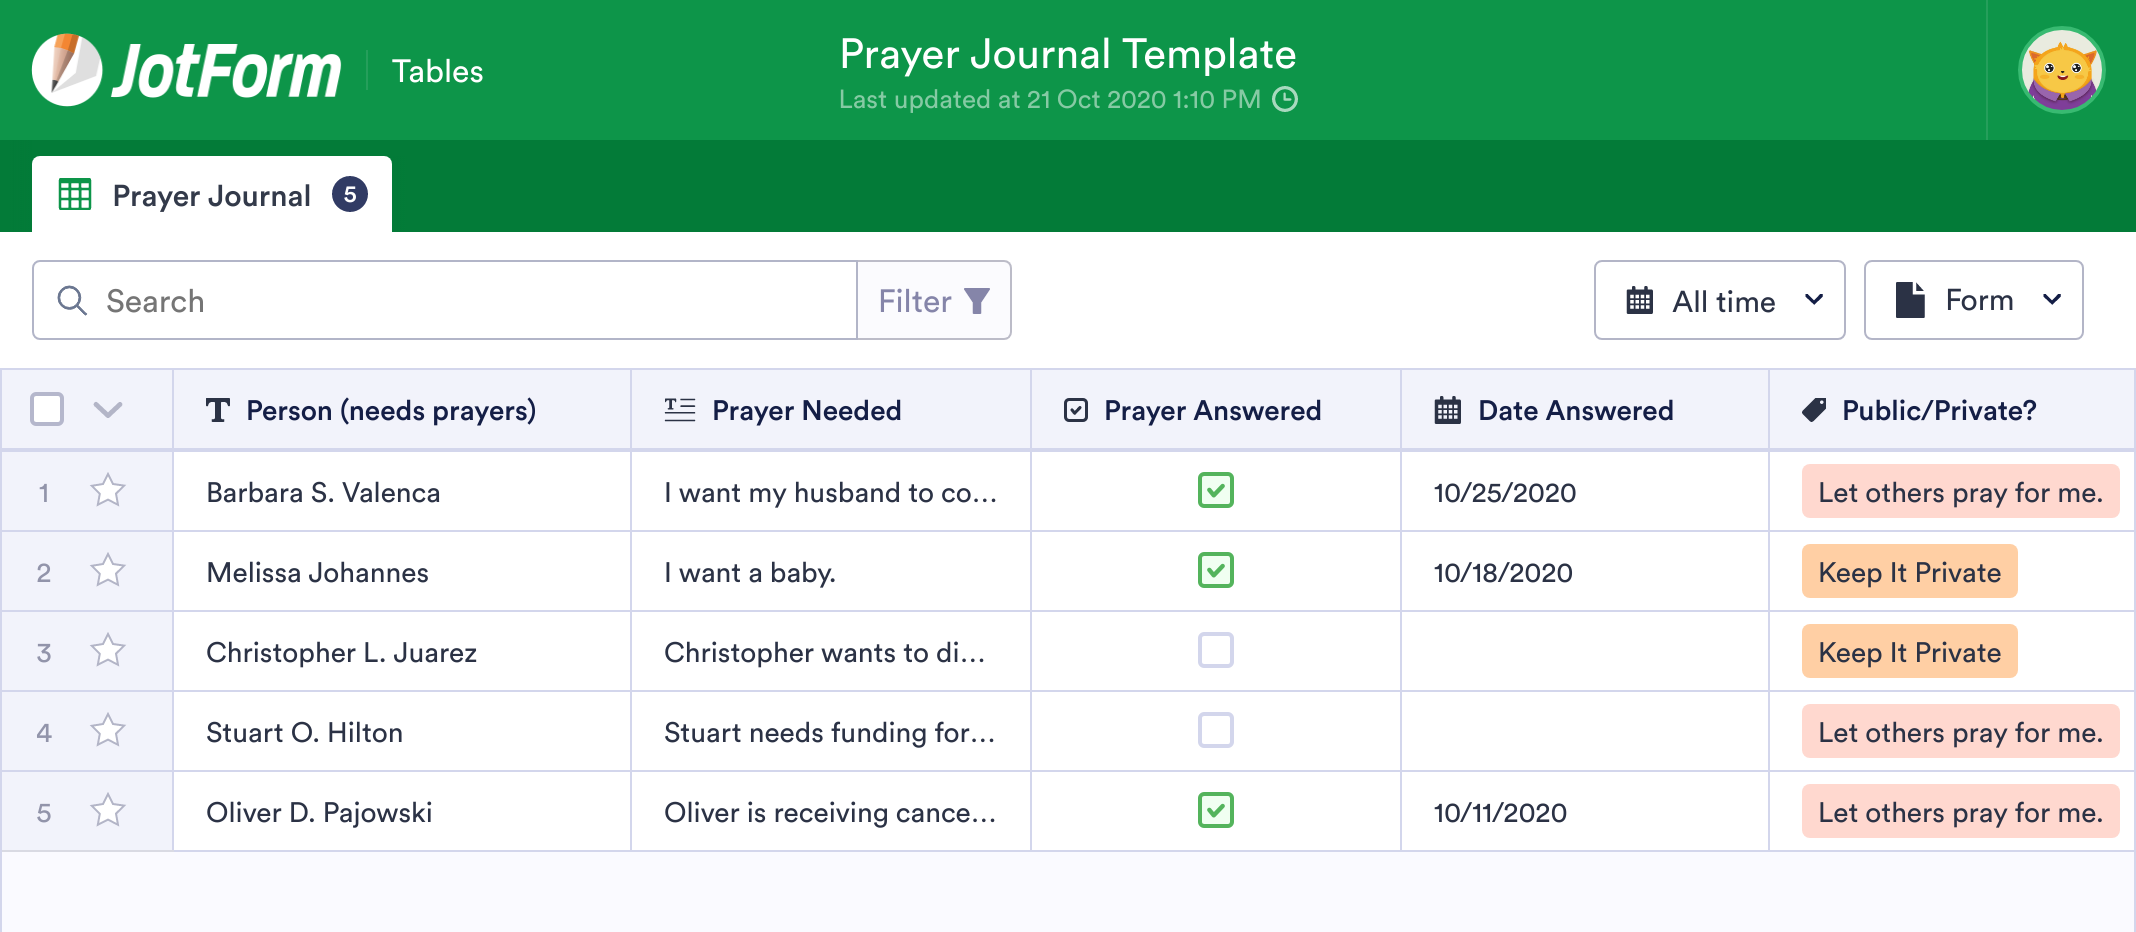 Prayer Journal Template